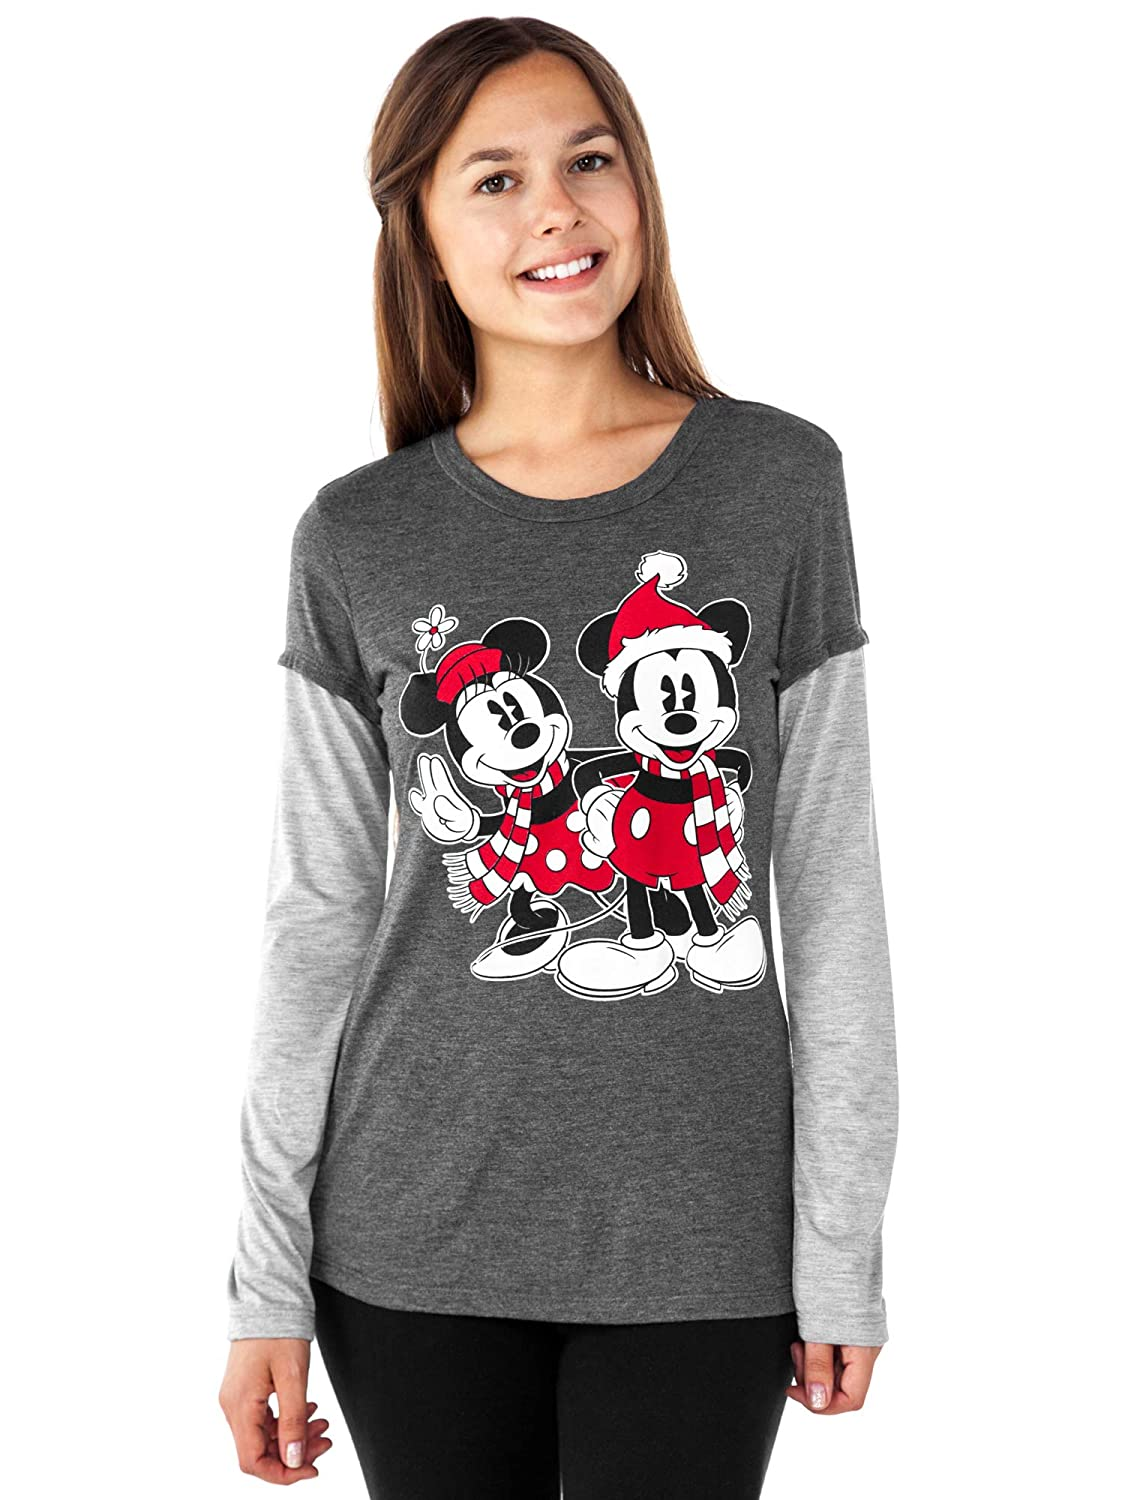 Disney Junior T-Shirt Mickey & Minnie Mouse Winter Christmas Print Long Sleeve